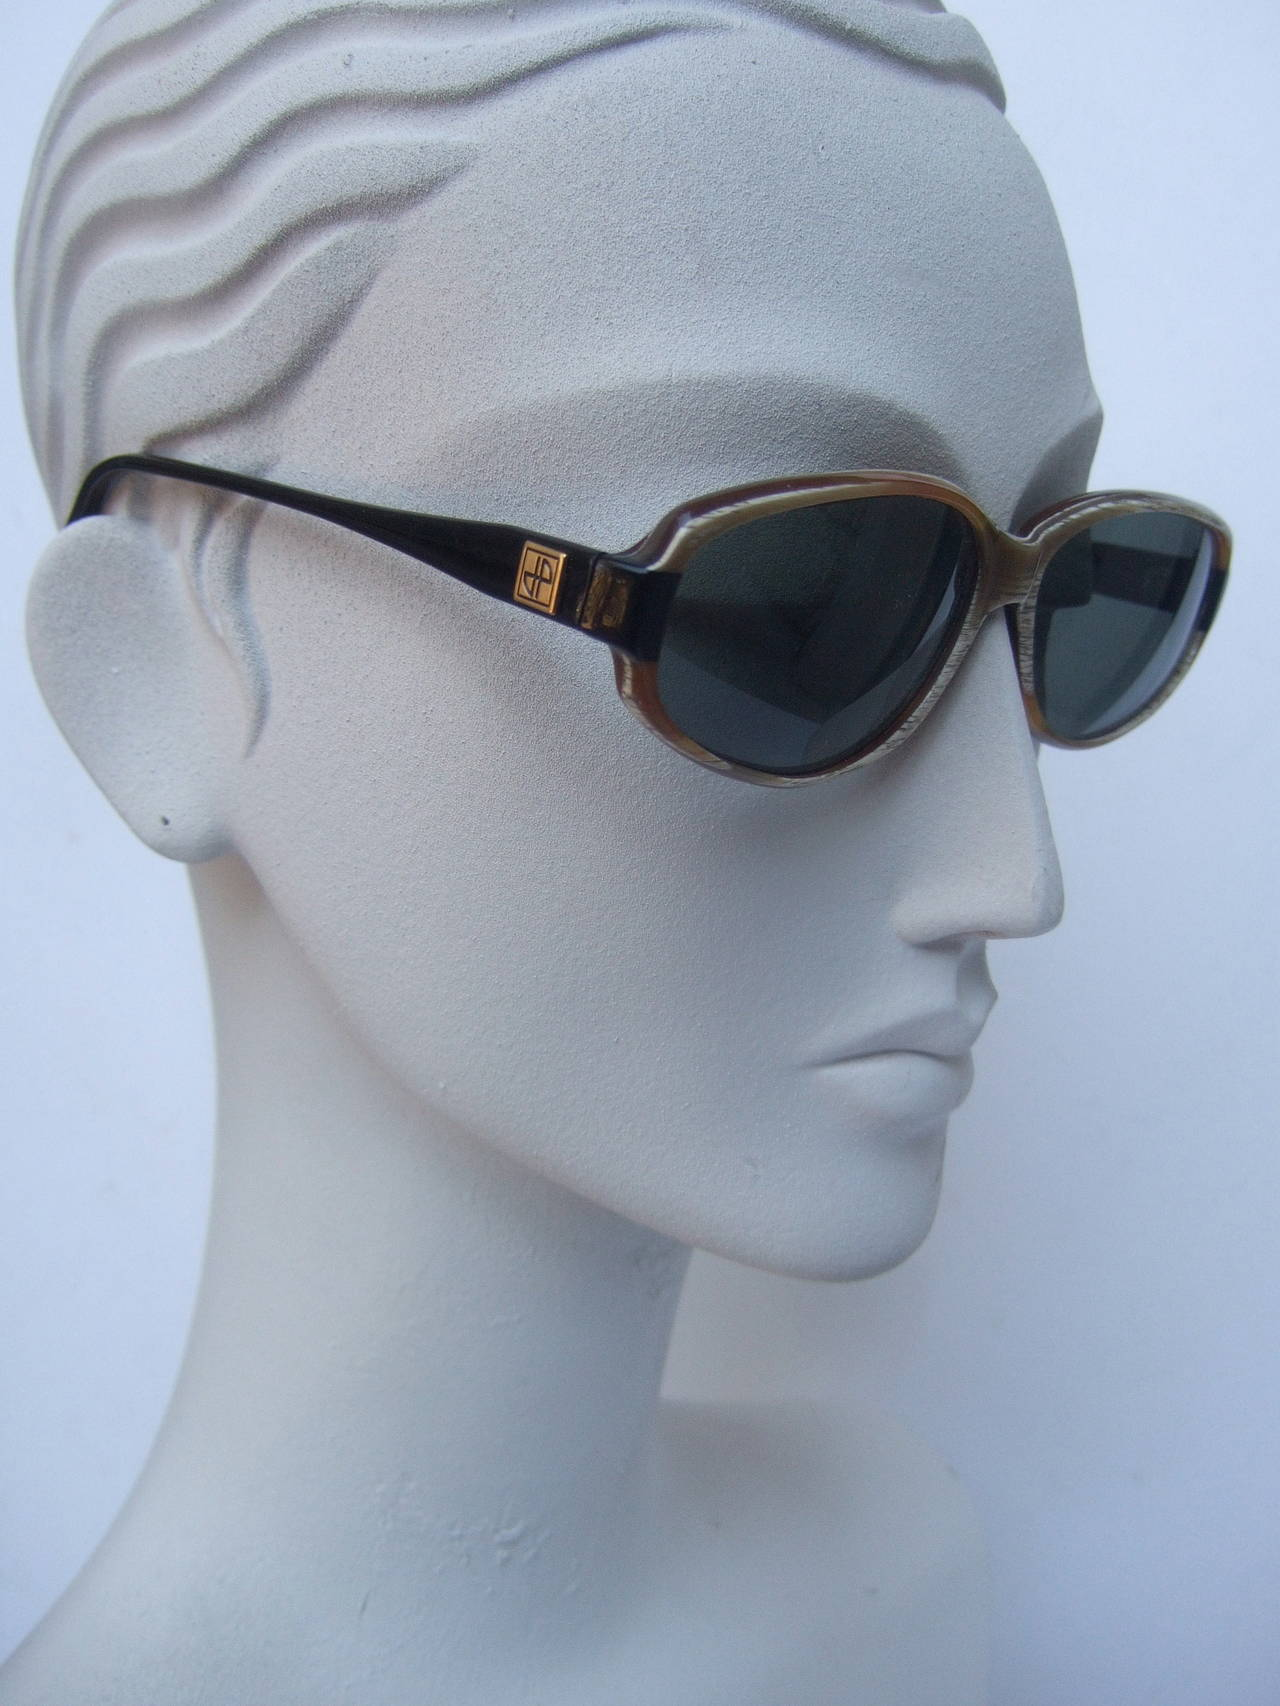 Jean Patou Paris Stylish Sunglasses Made in France In Excellent Condition For Sale In Santa Barbara, CA